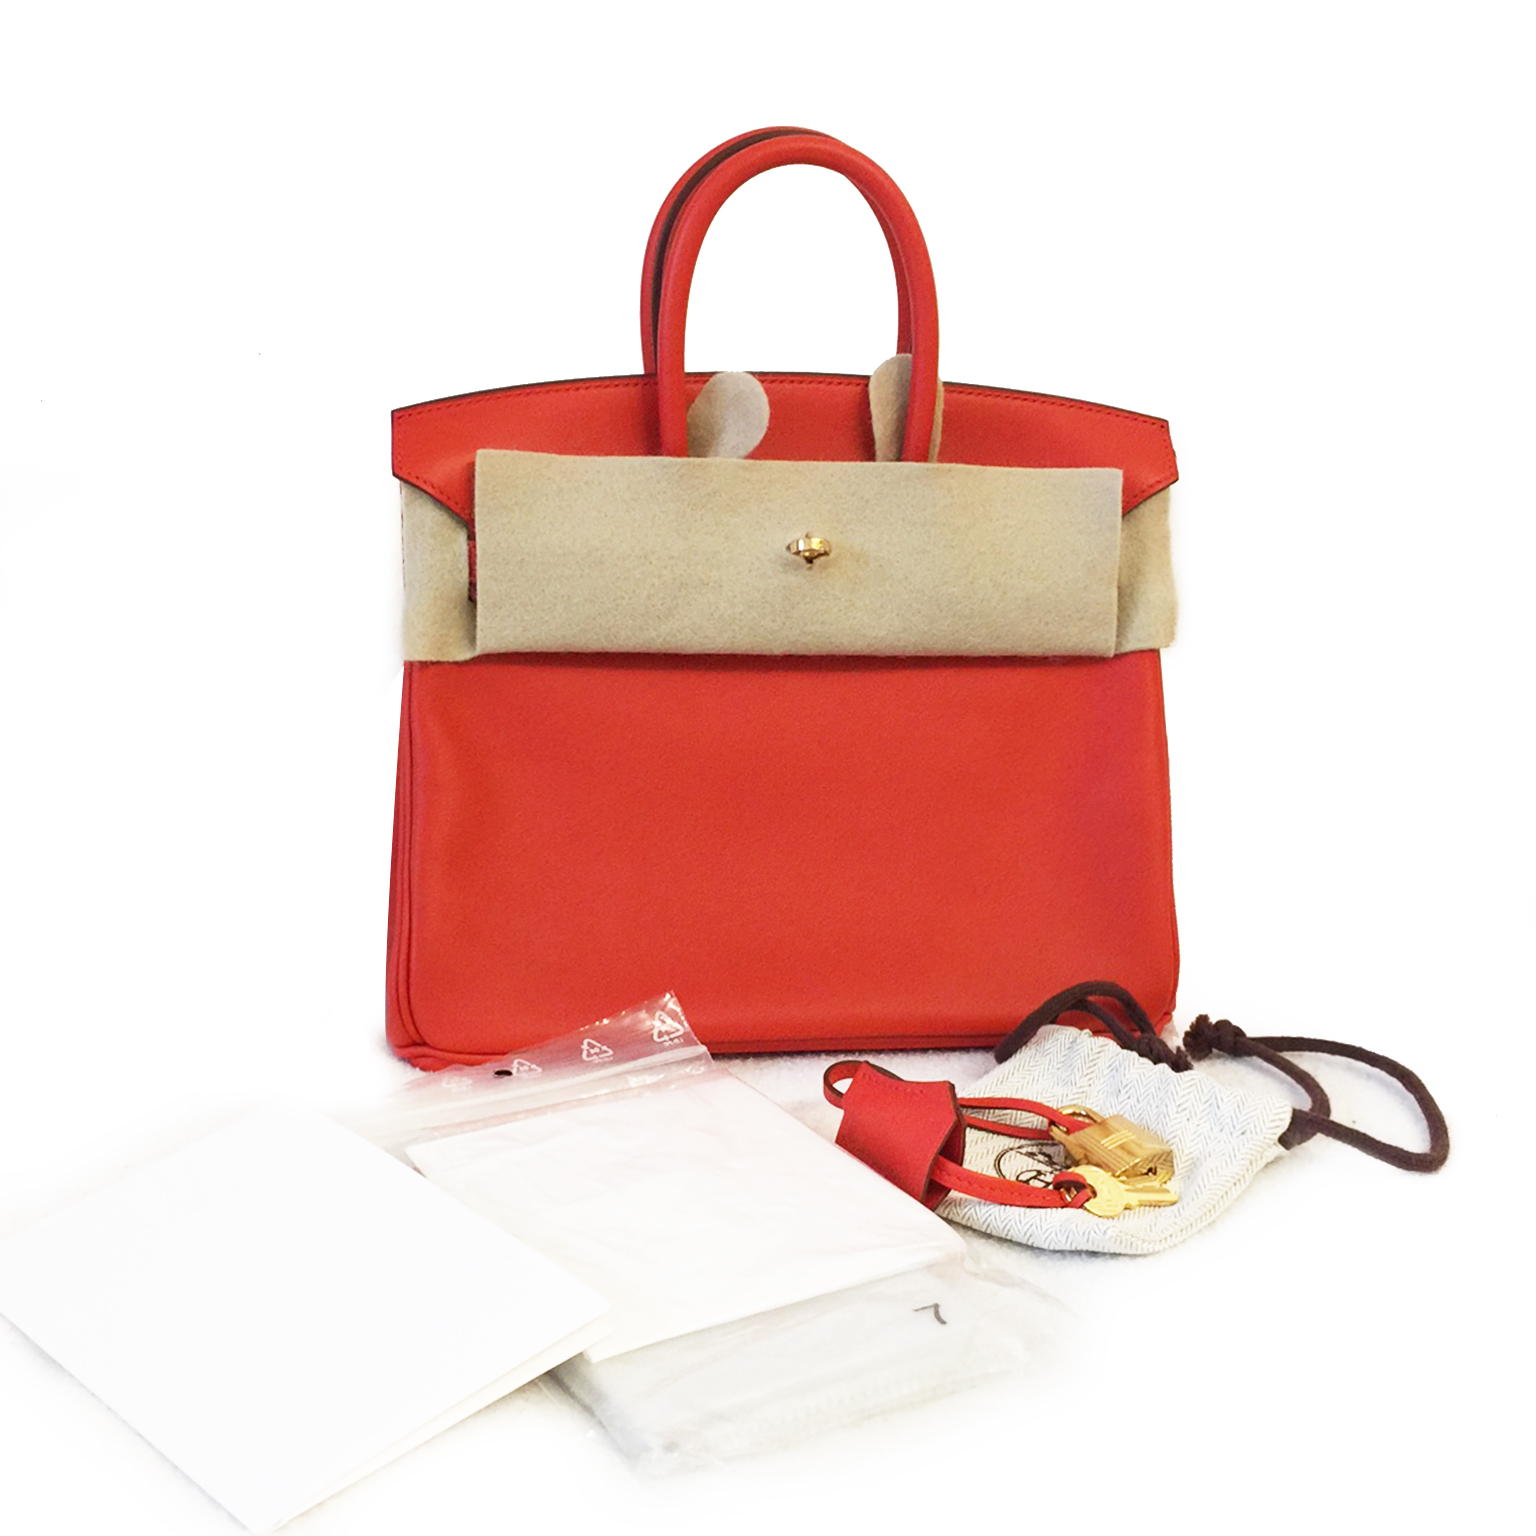 searching For Birkin Bag ? no waitinglist only 100% atuthentic full set neuf 100% authentic sac a main Brand New Hermes Birkin 25 pour le meilleur prix